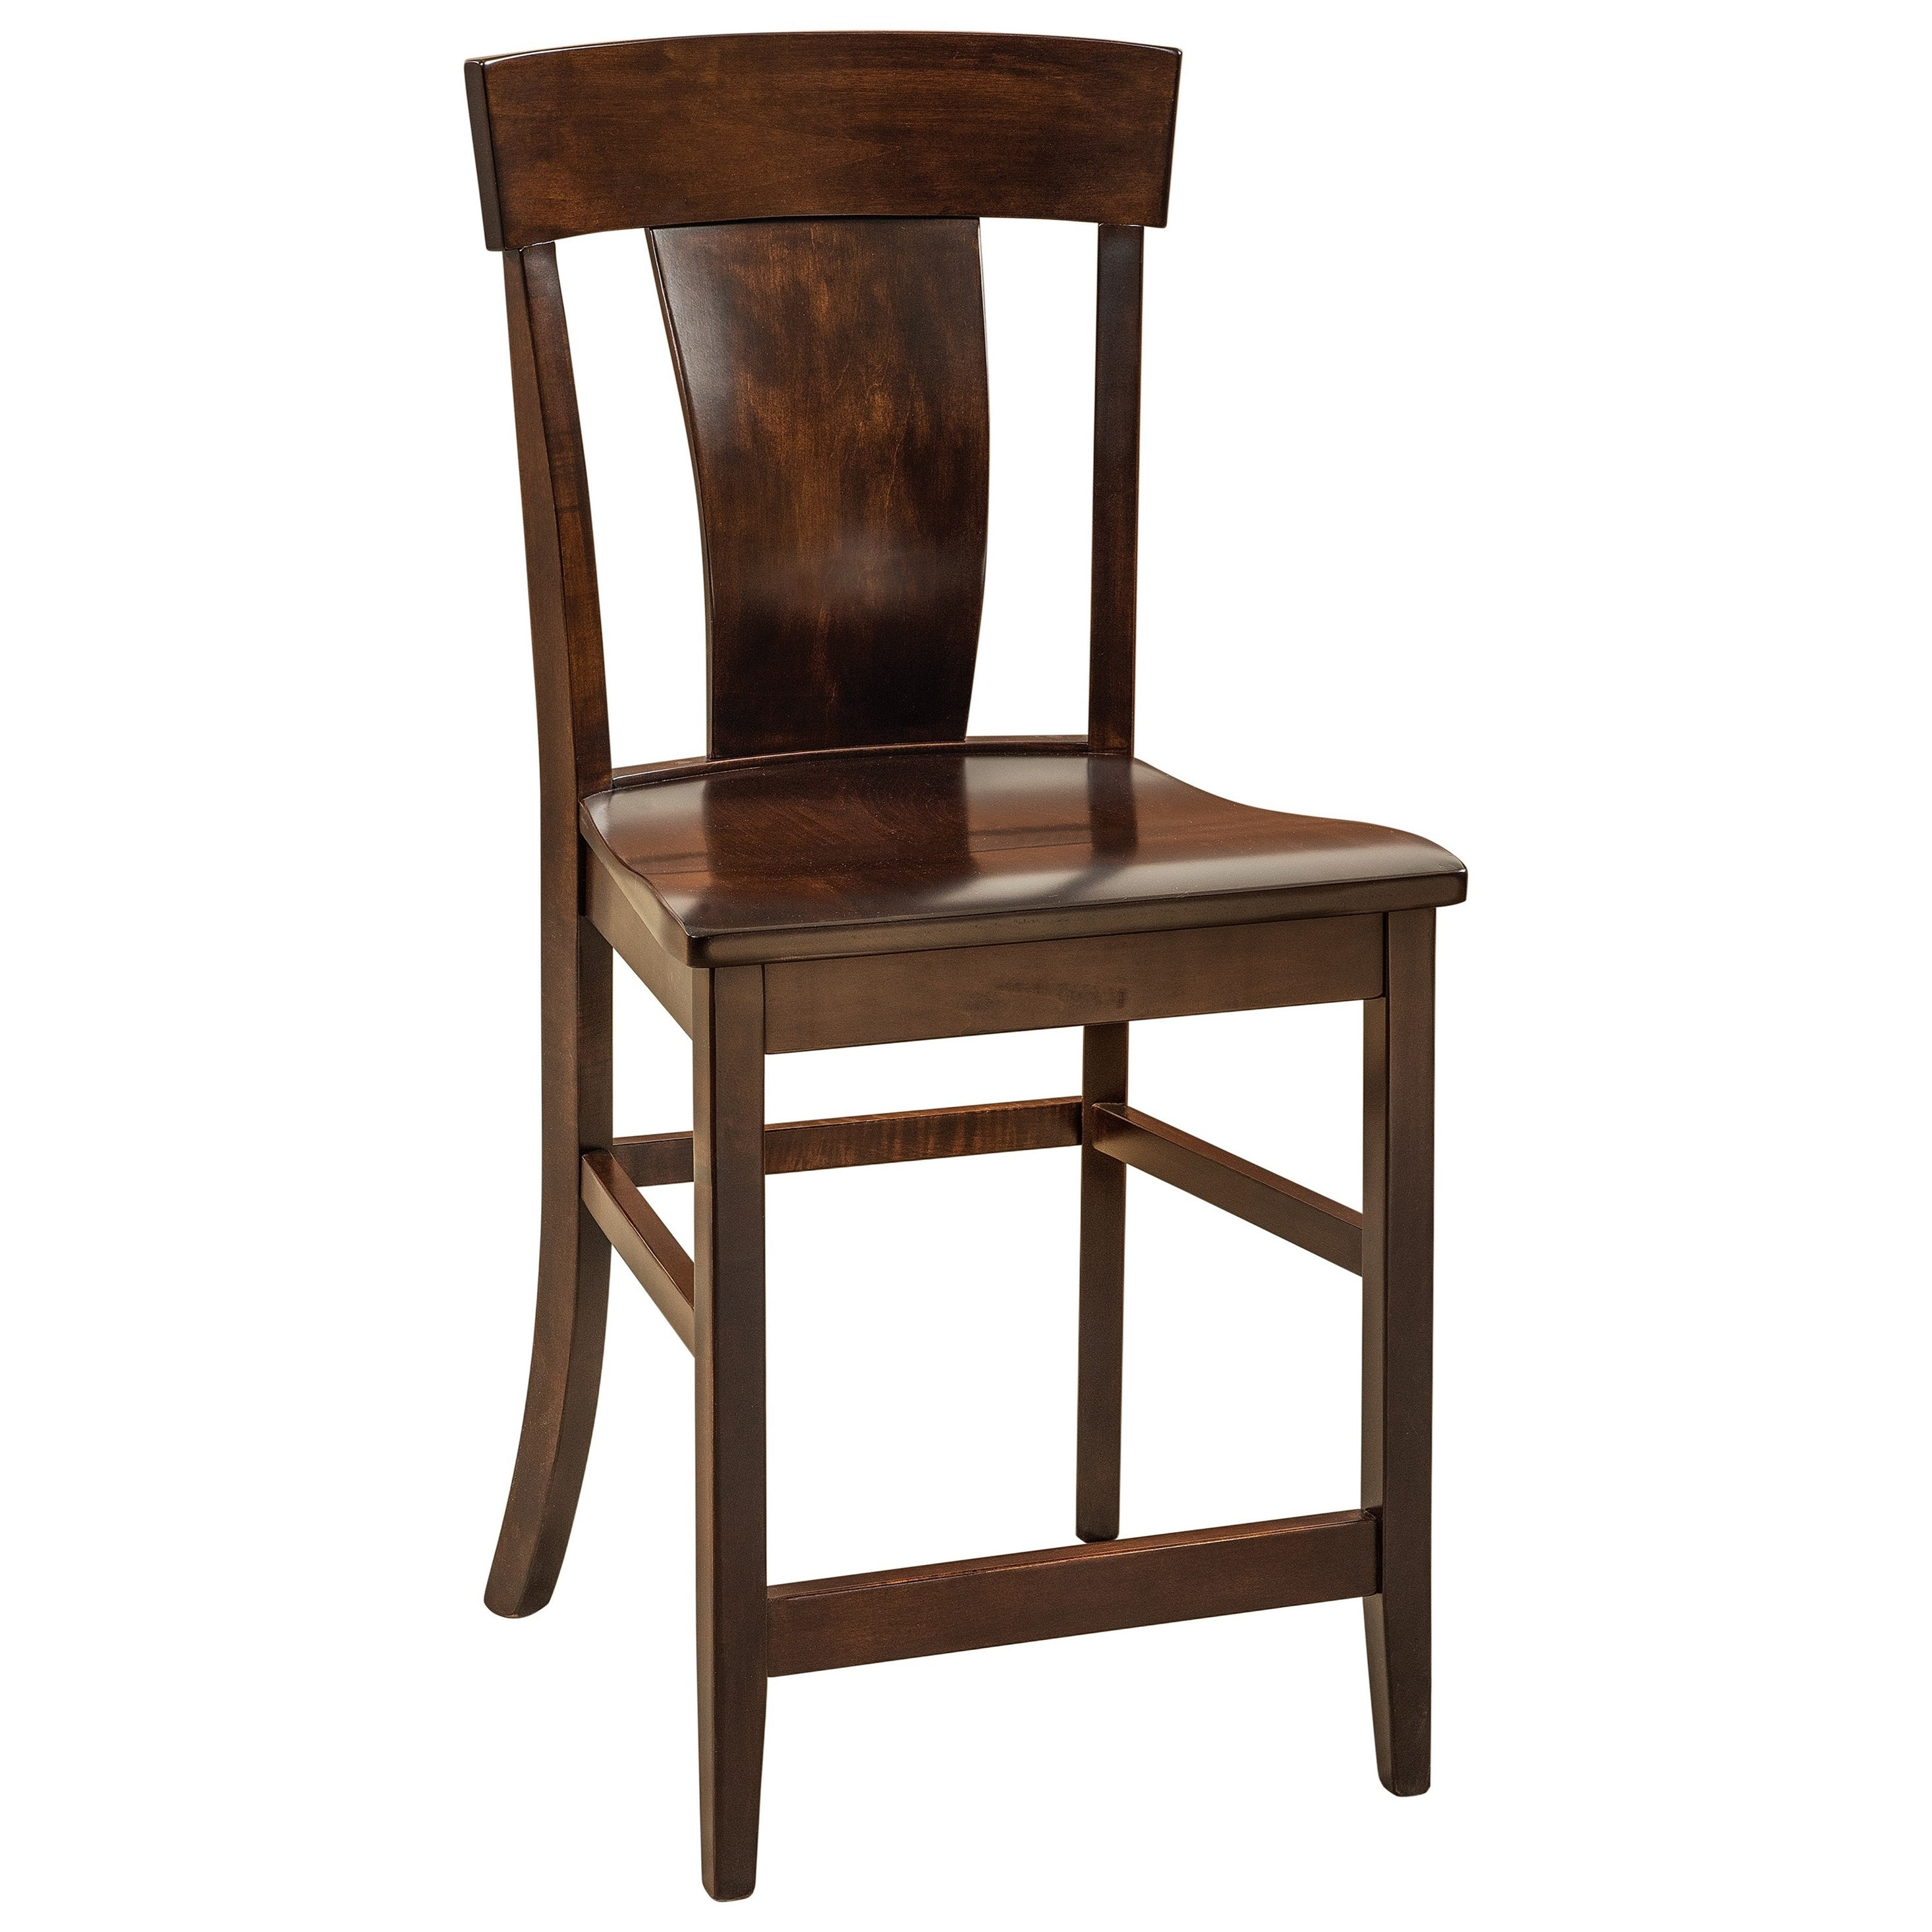 Baldwin Stationary Counter Height Stool - Leather Se by F&N Woodworking at Mueller Furniture